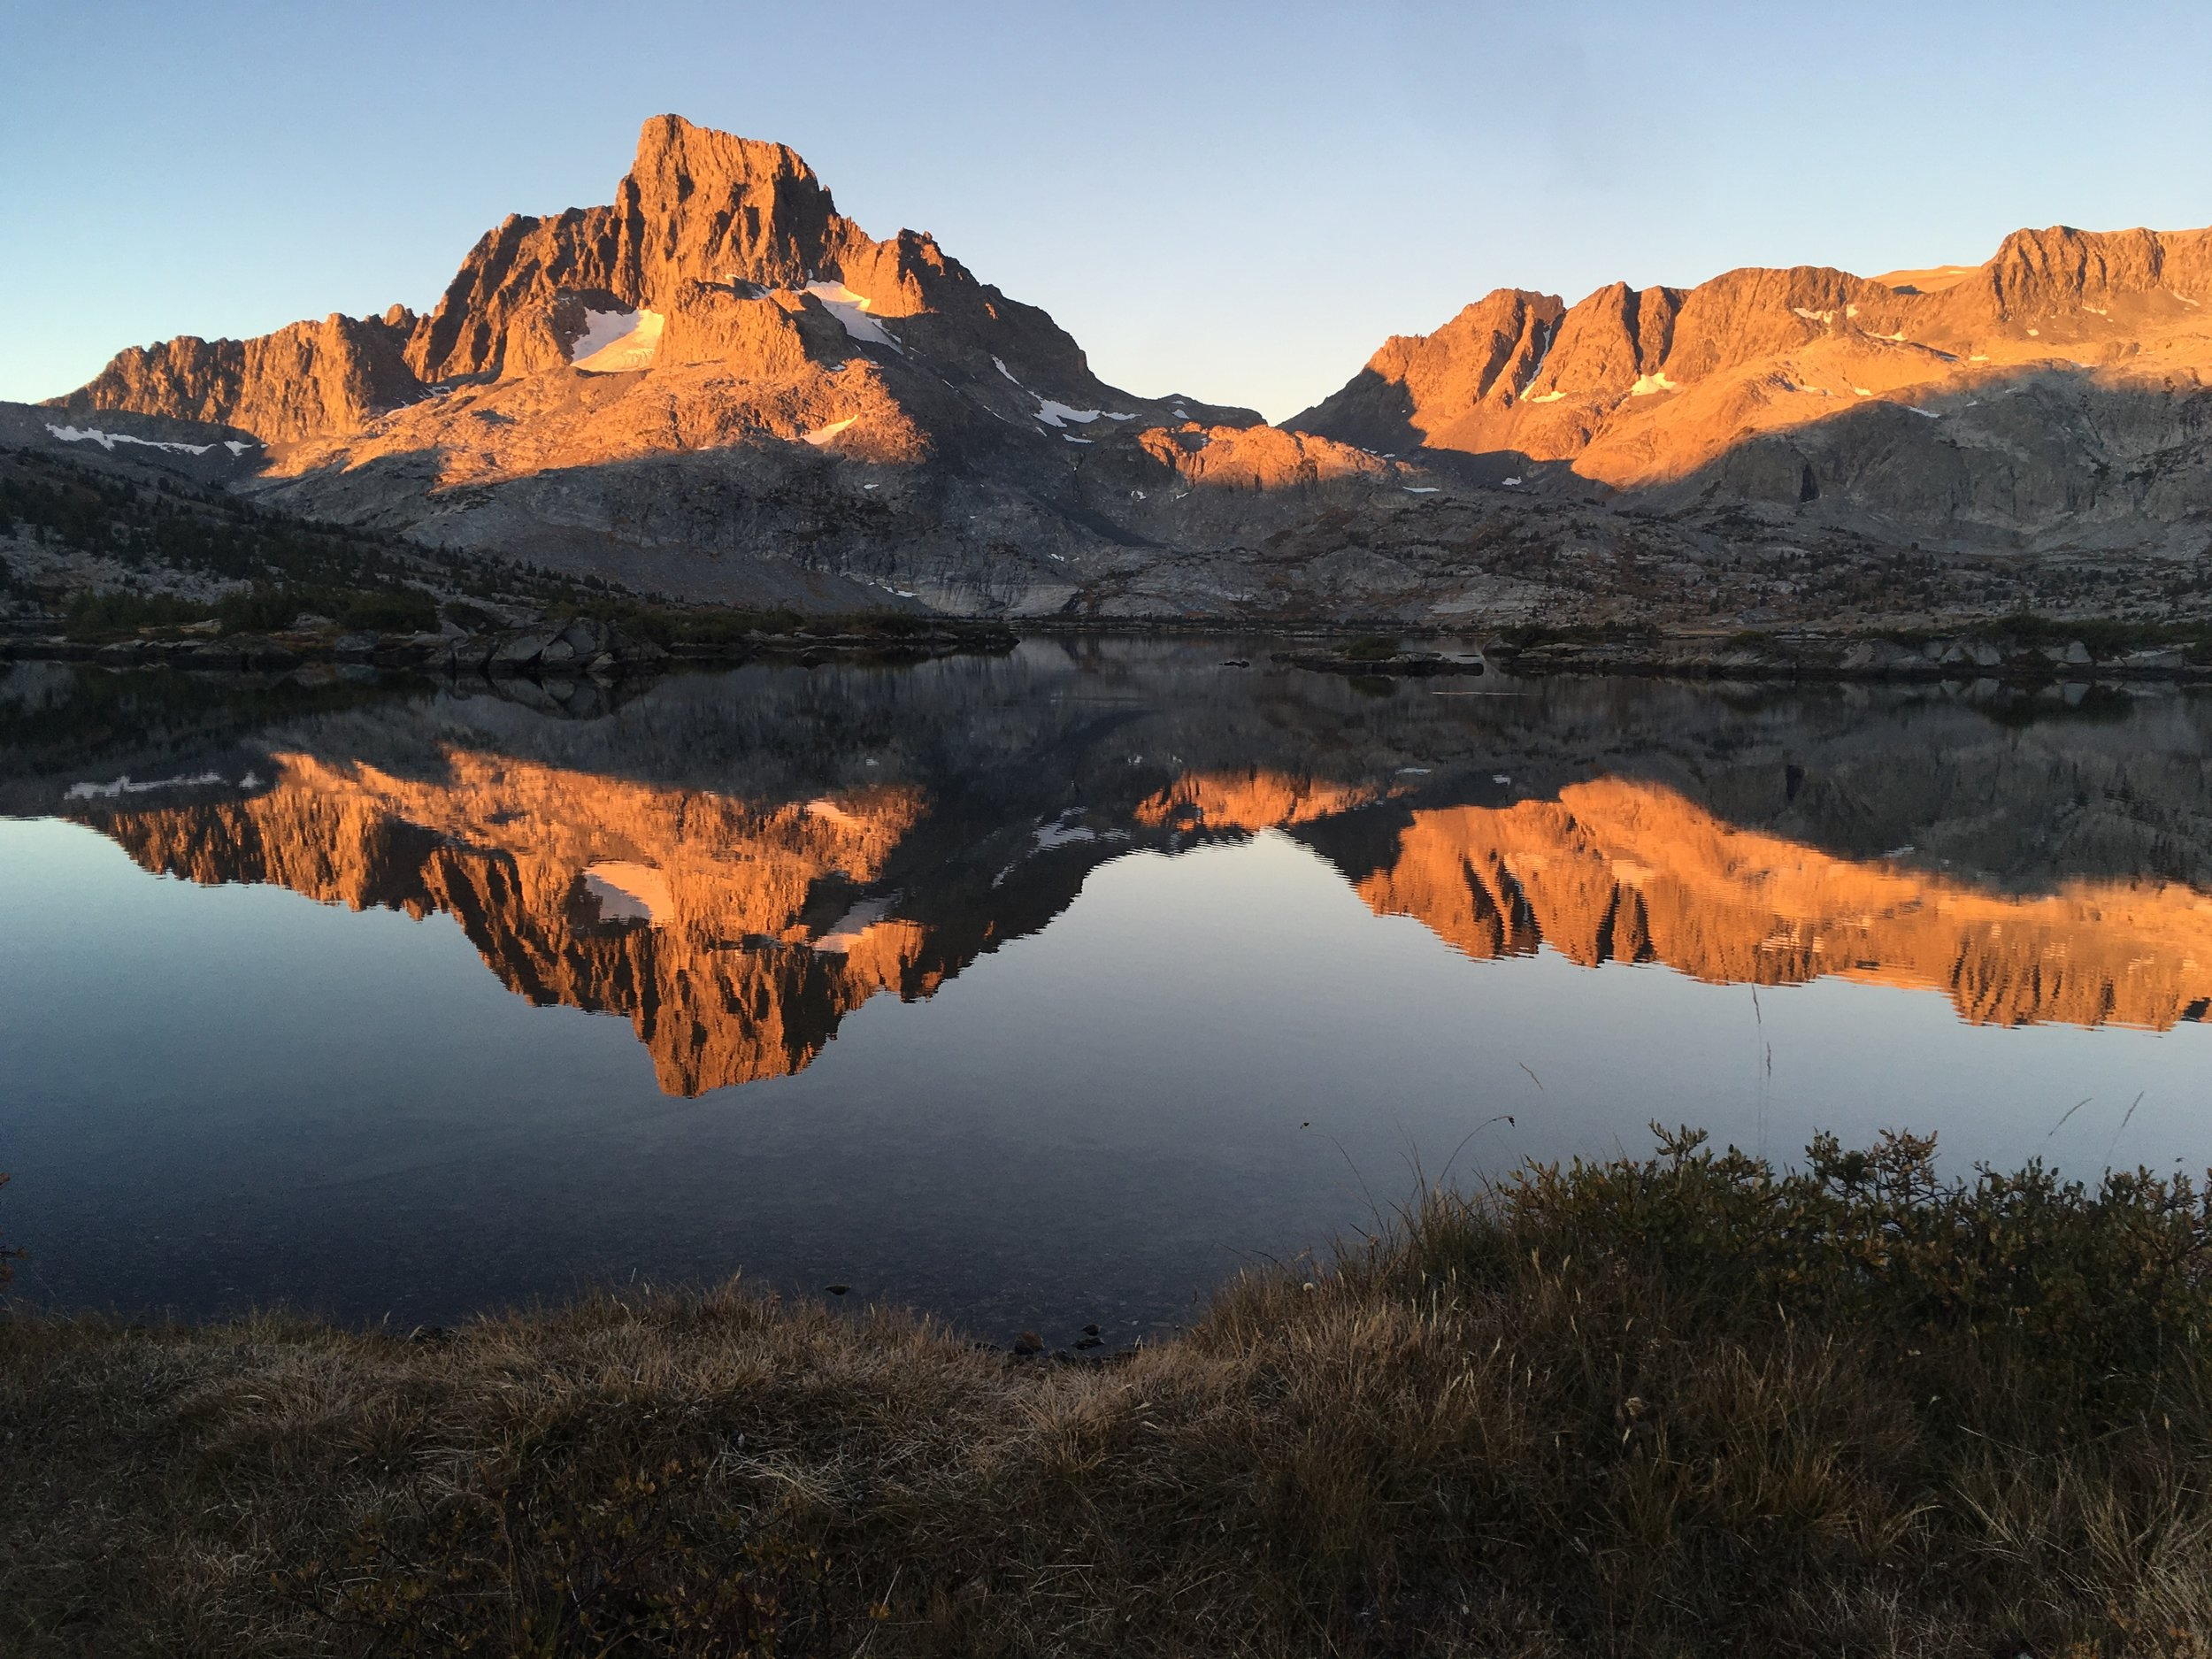 Morning light at Thousand Island Lake. Wishing we could linger longer at this beautiful place.